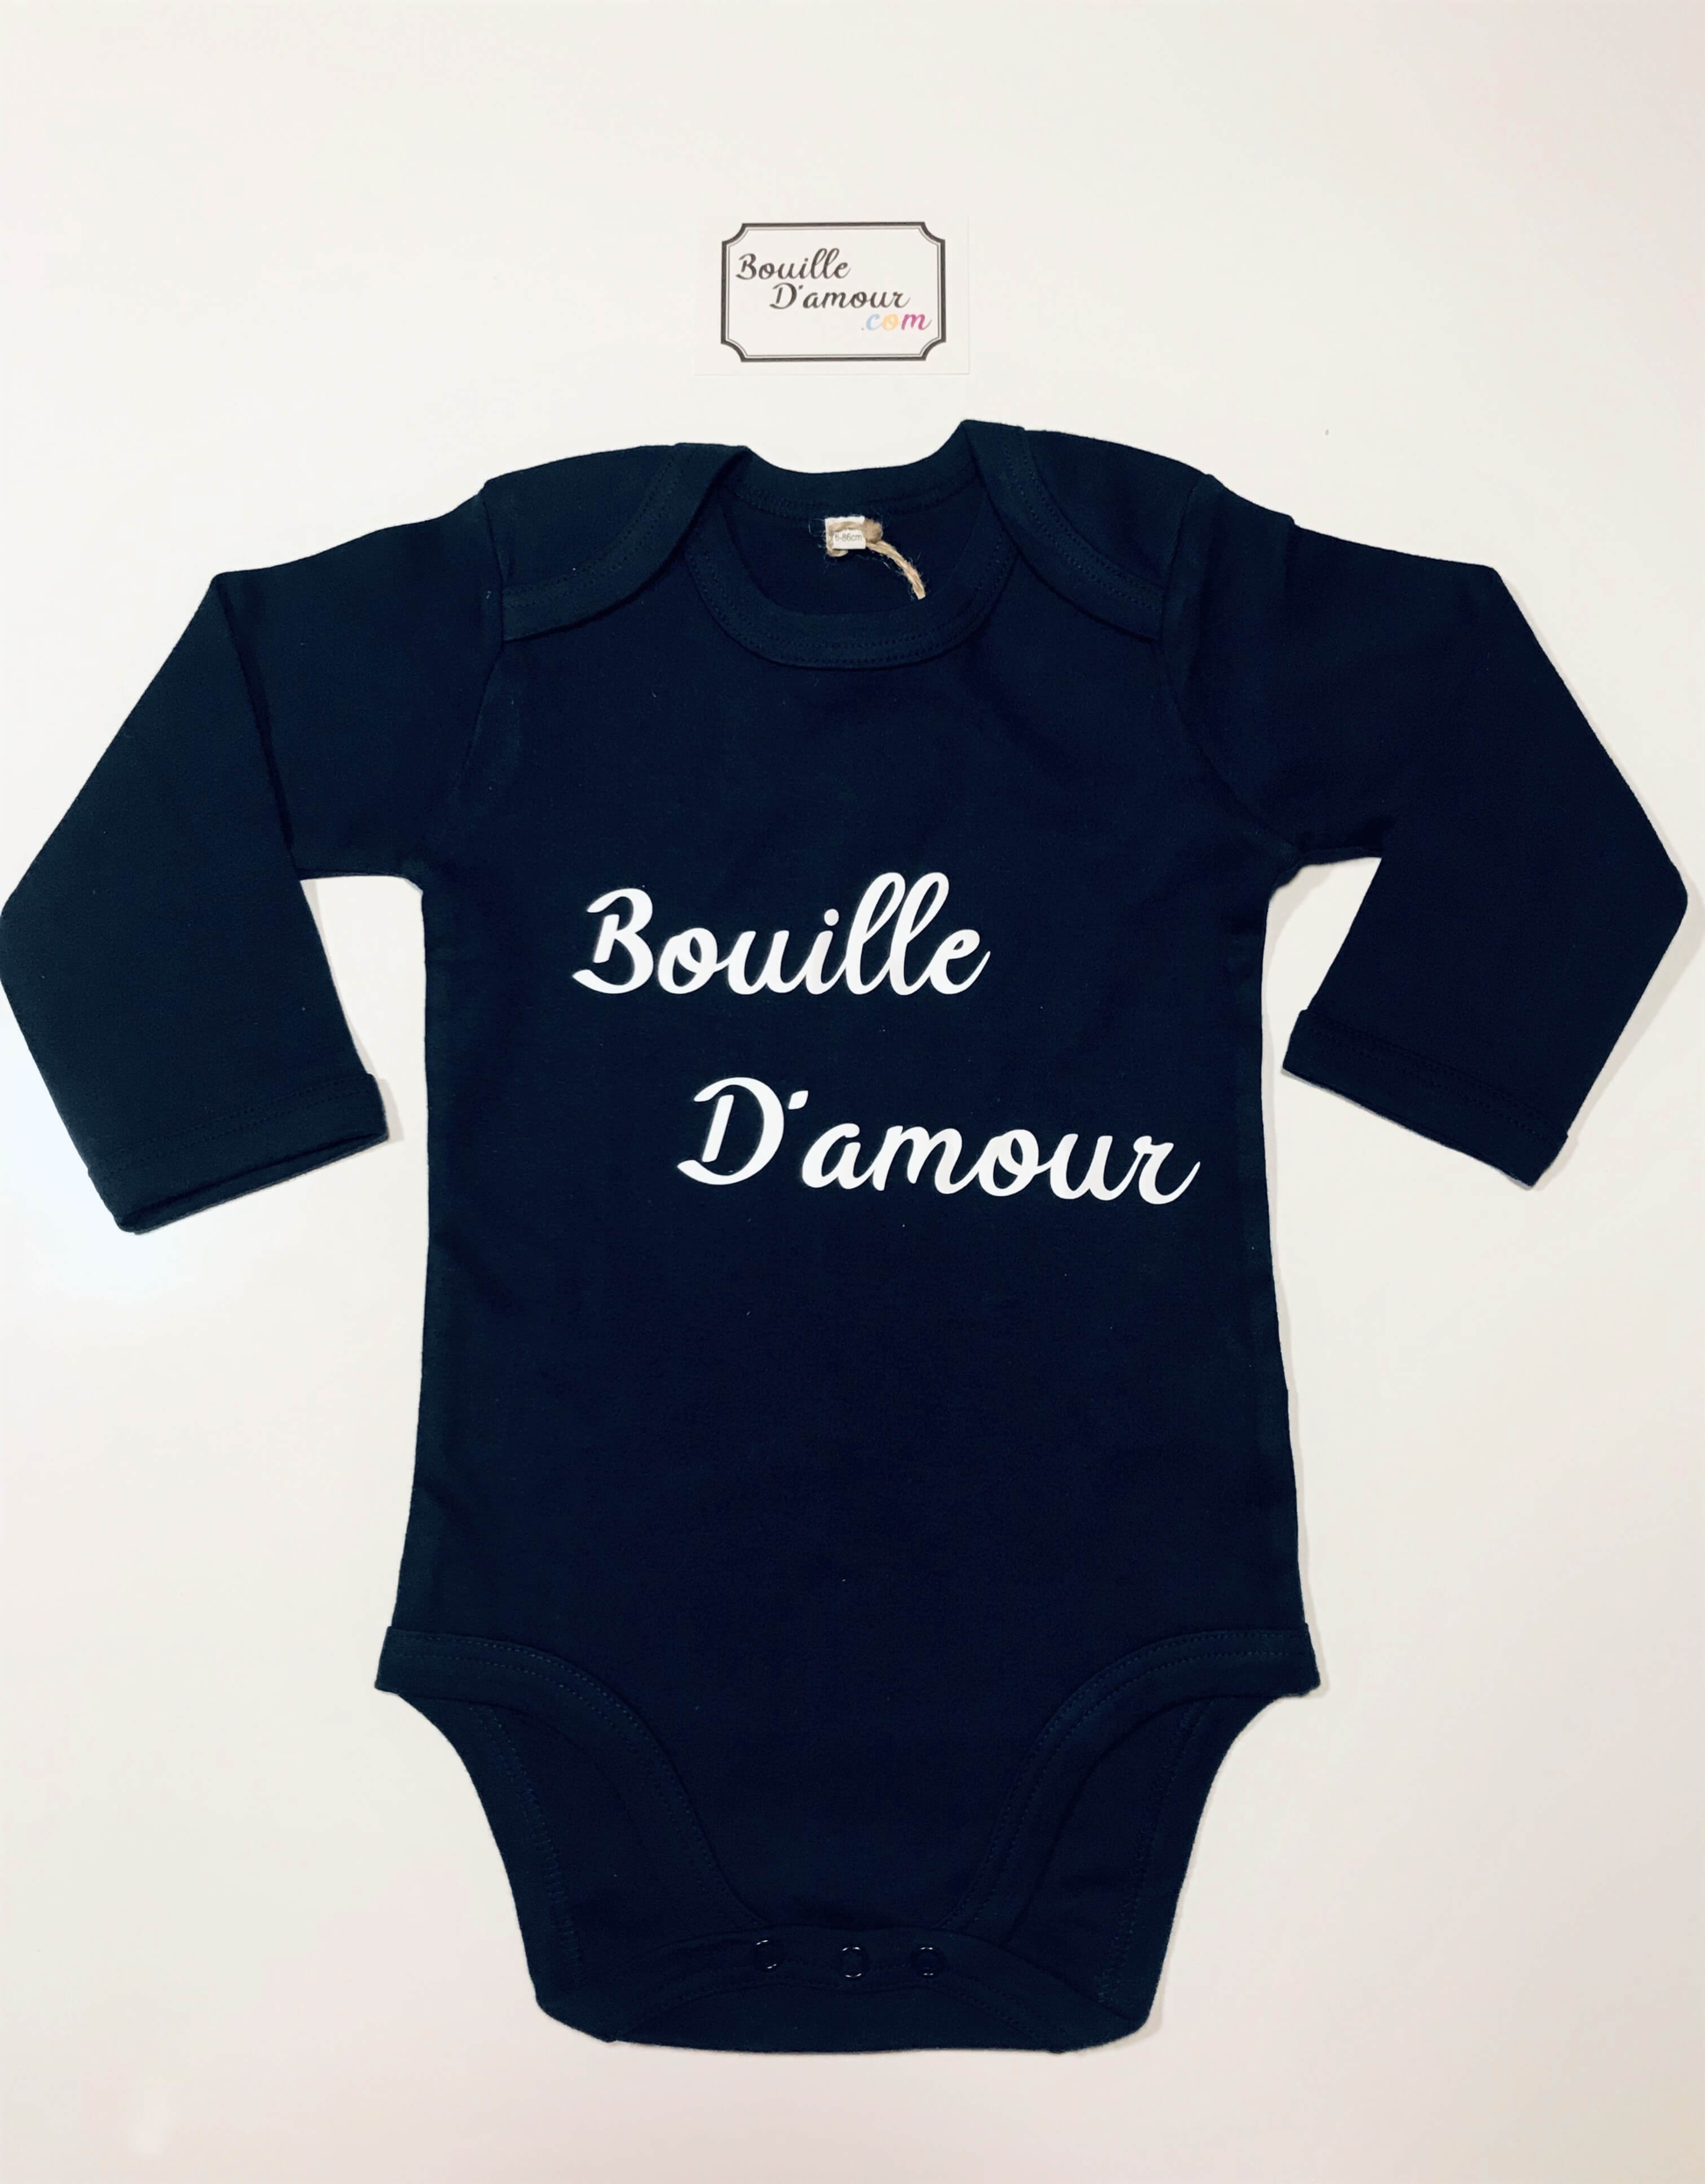 Body Bouille d\'amour